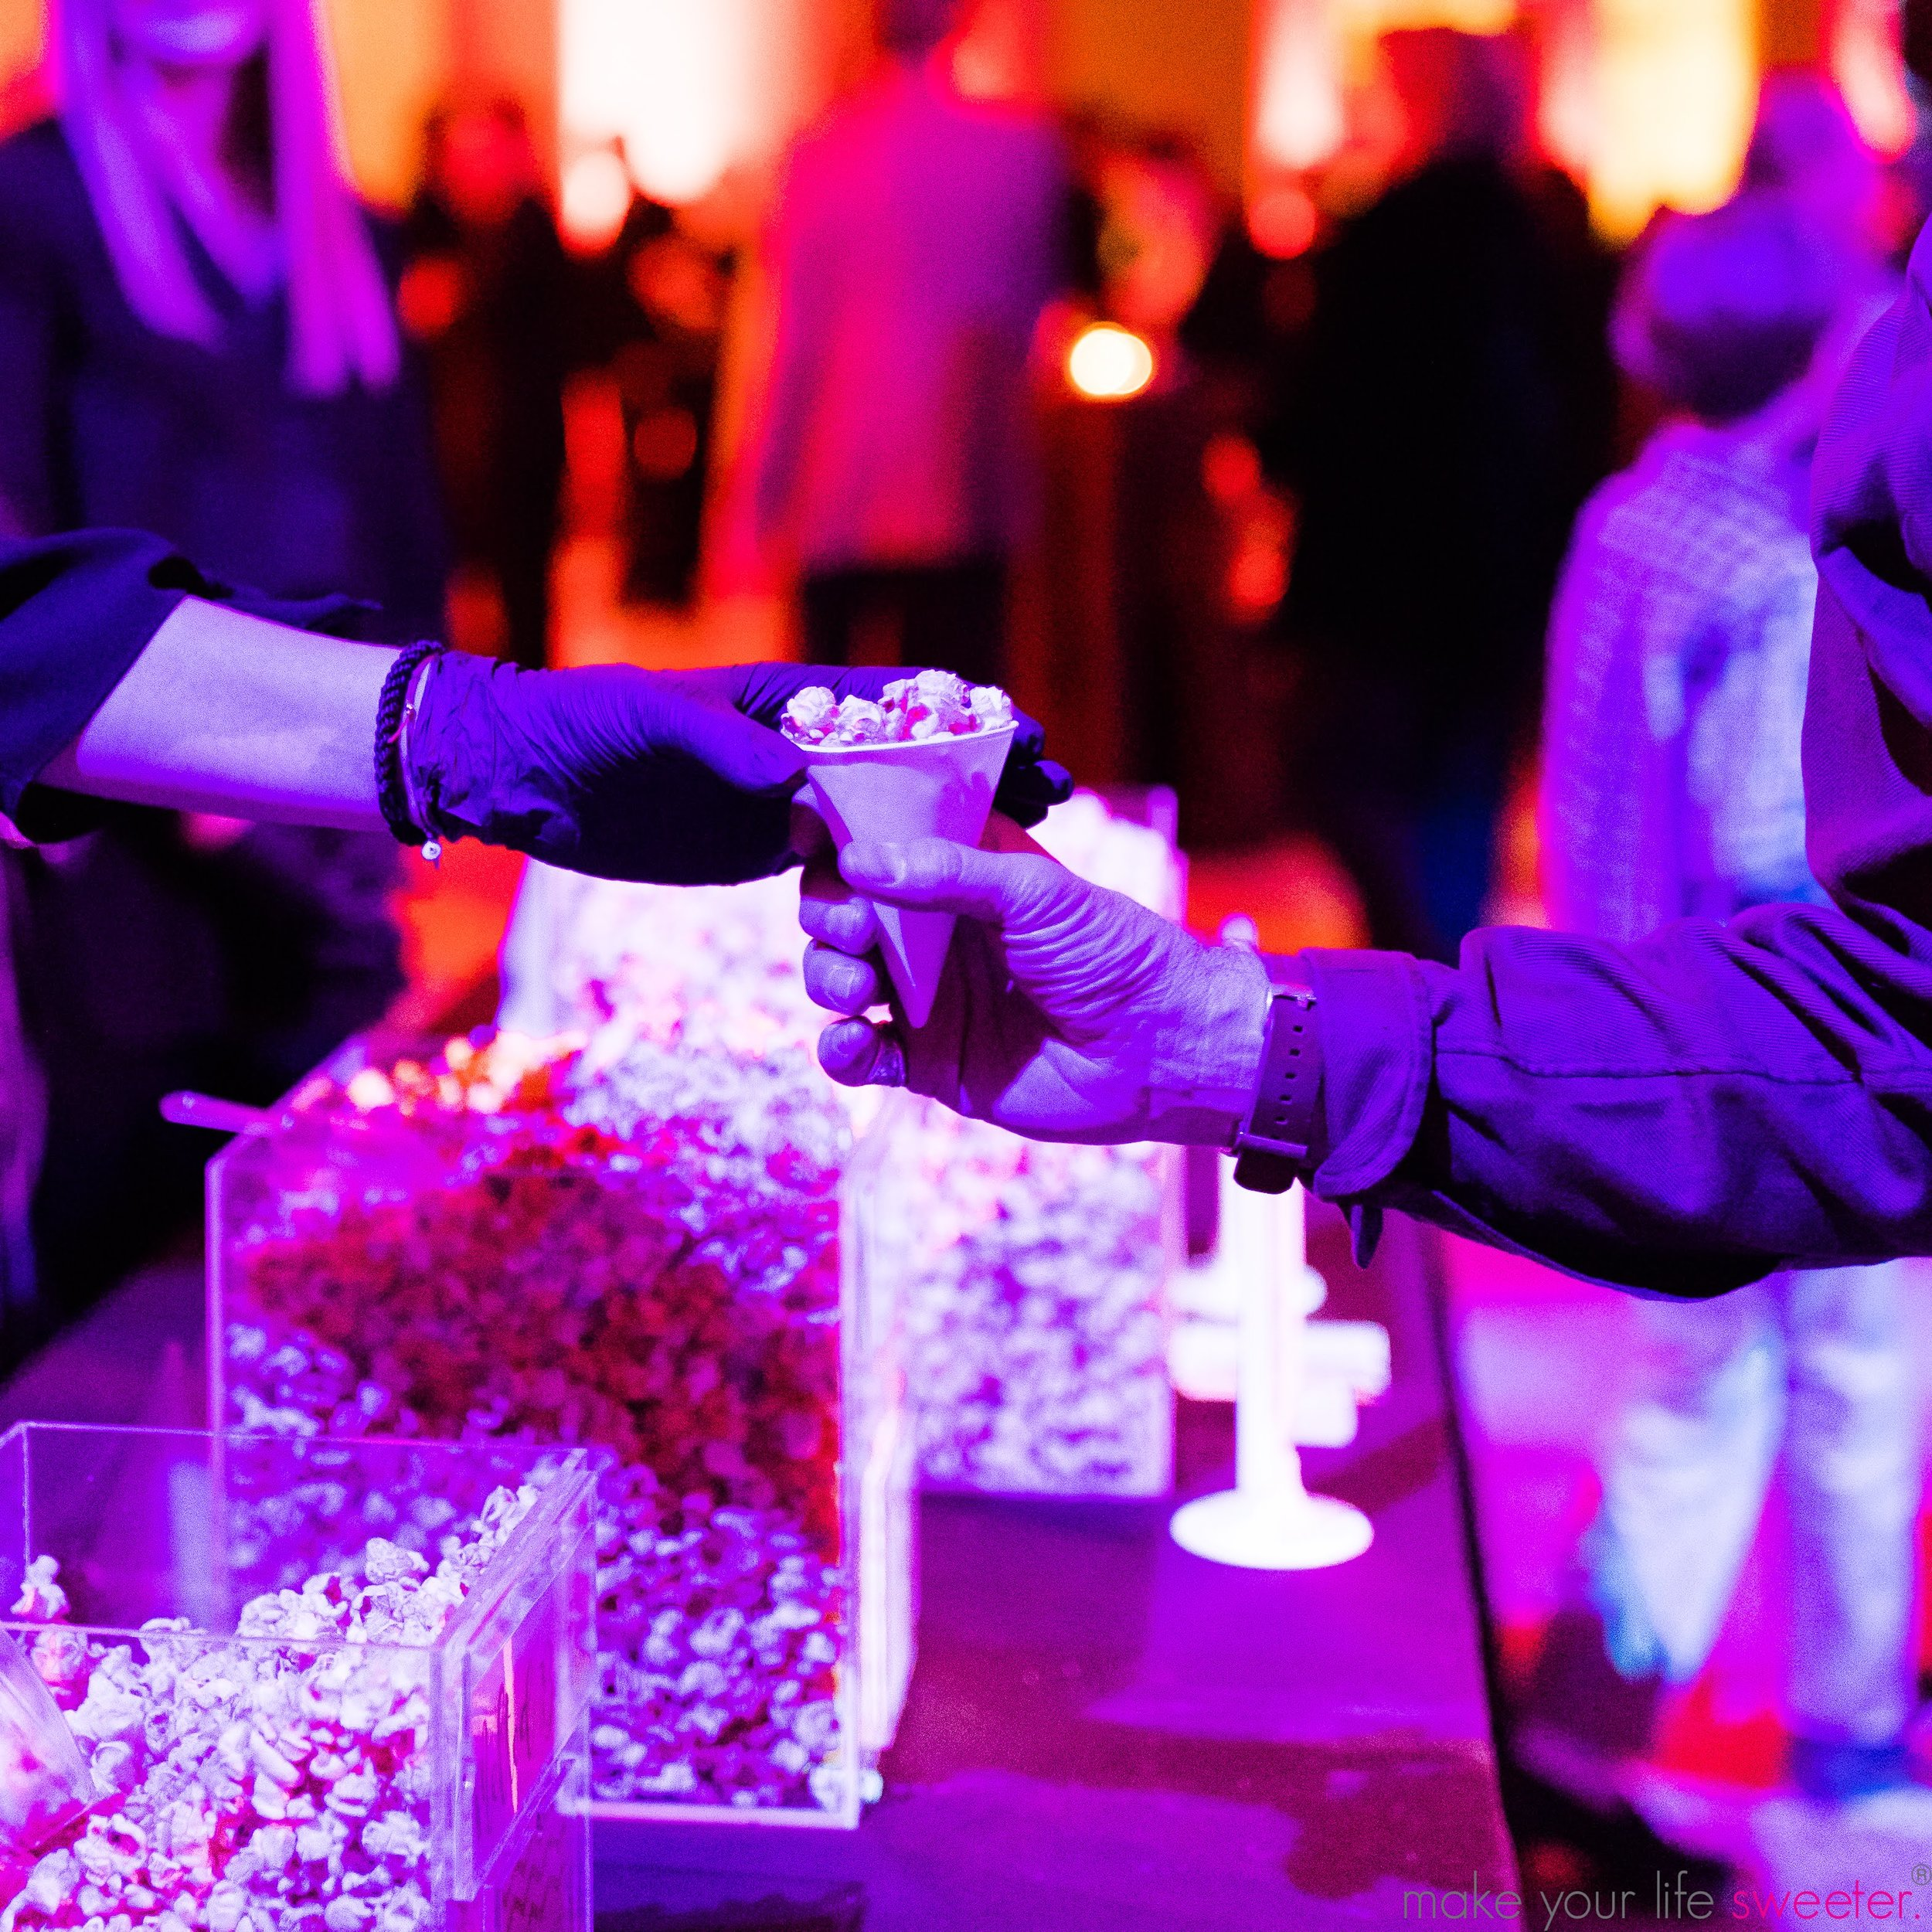 Make Your Life Sweeter Events - The Met Member Holiday Party: HotPoppin Gourmet Popcorn Bar